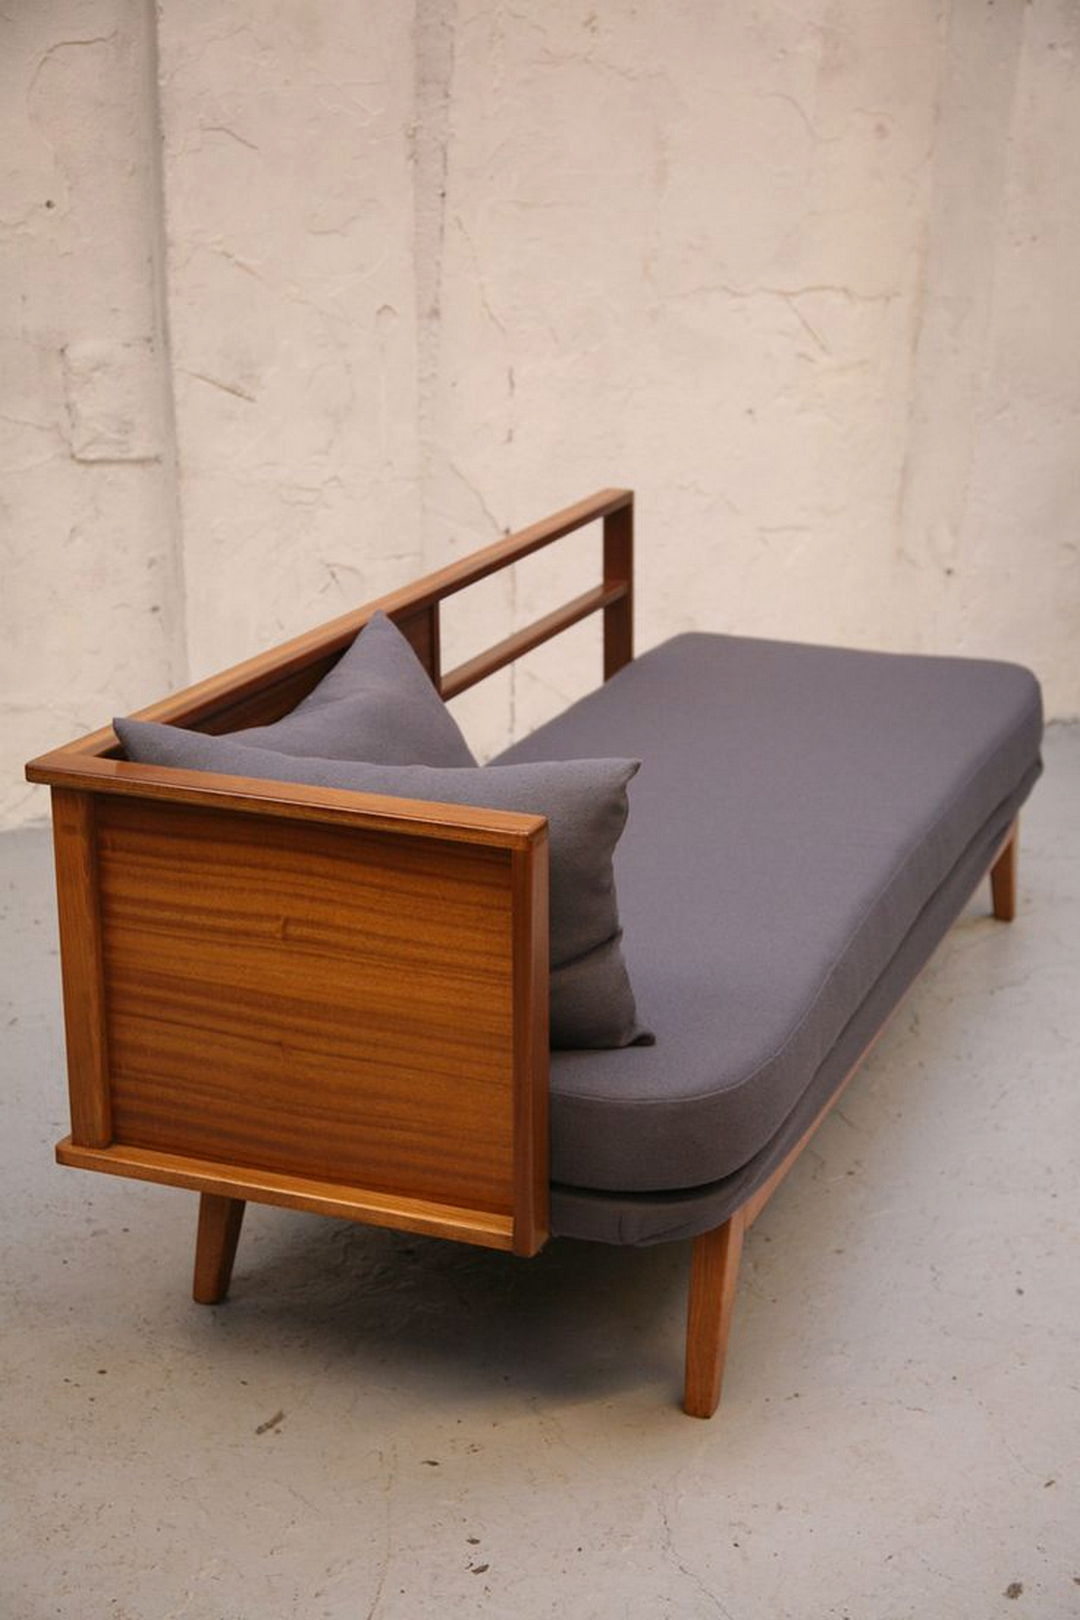 Furniture For The National Audiovisual Institute Nina A Furniture Project With Dominant And Neutral Colors Vintage Mid Century Furniture Mid Century Furniture Mid Century Modern Furniture